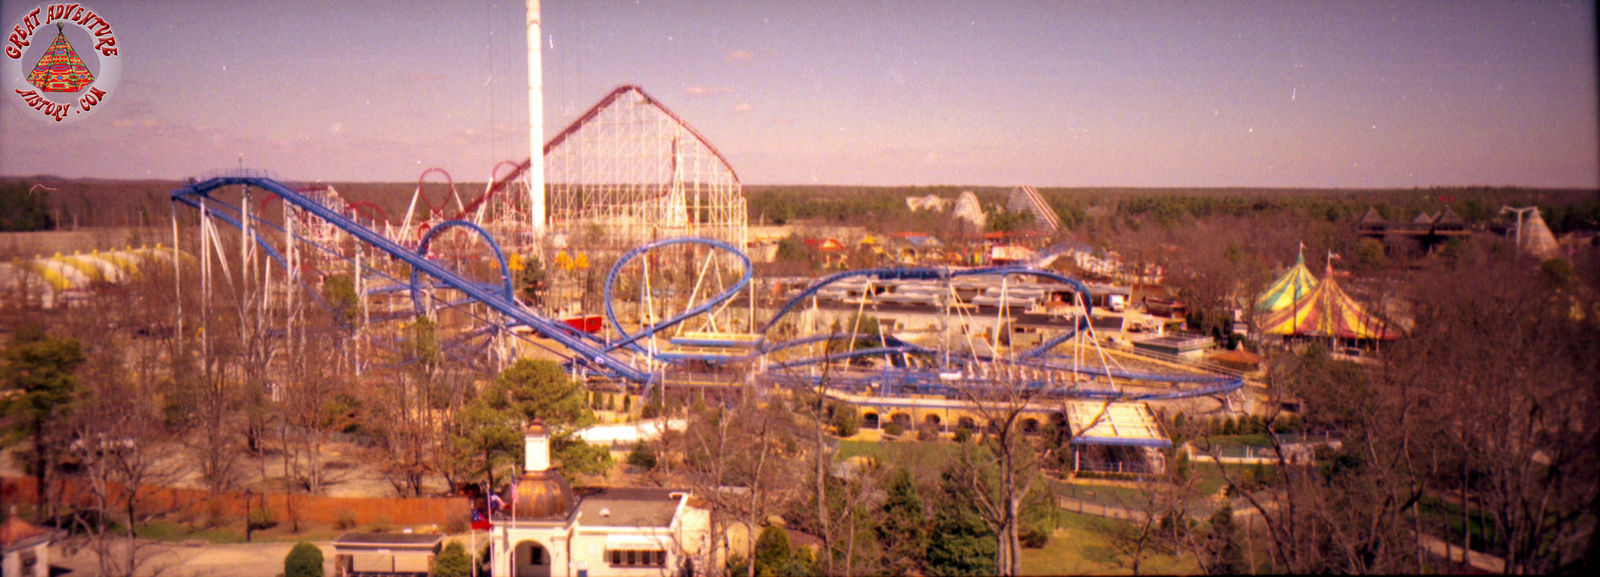 1991 ShockWave and Great American Scream Machine